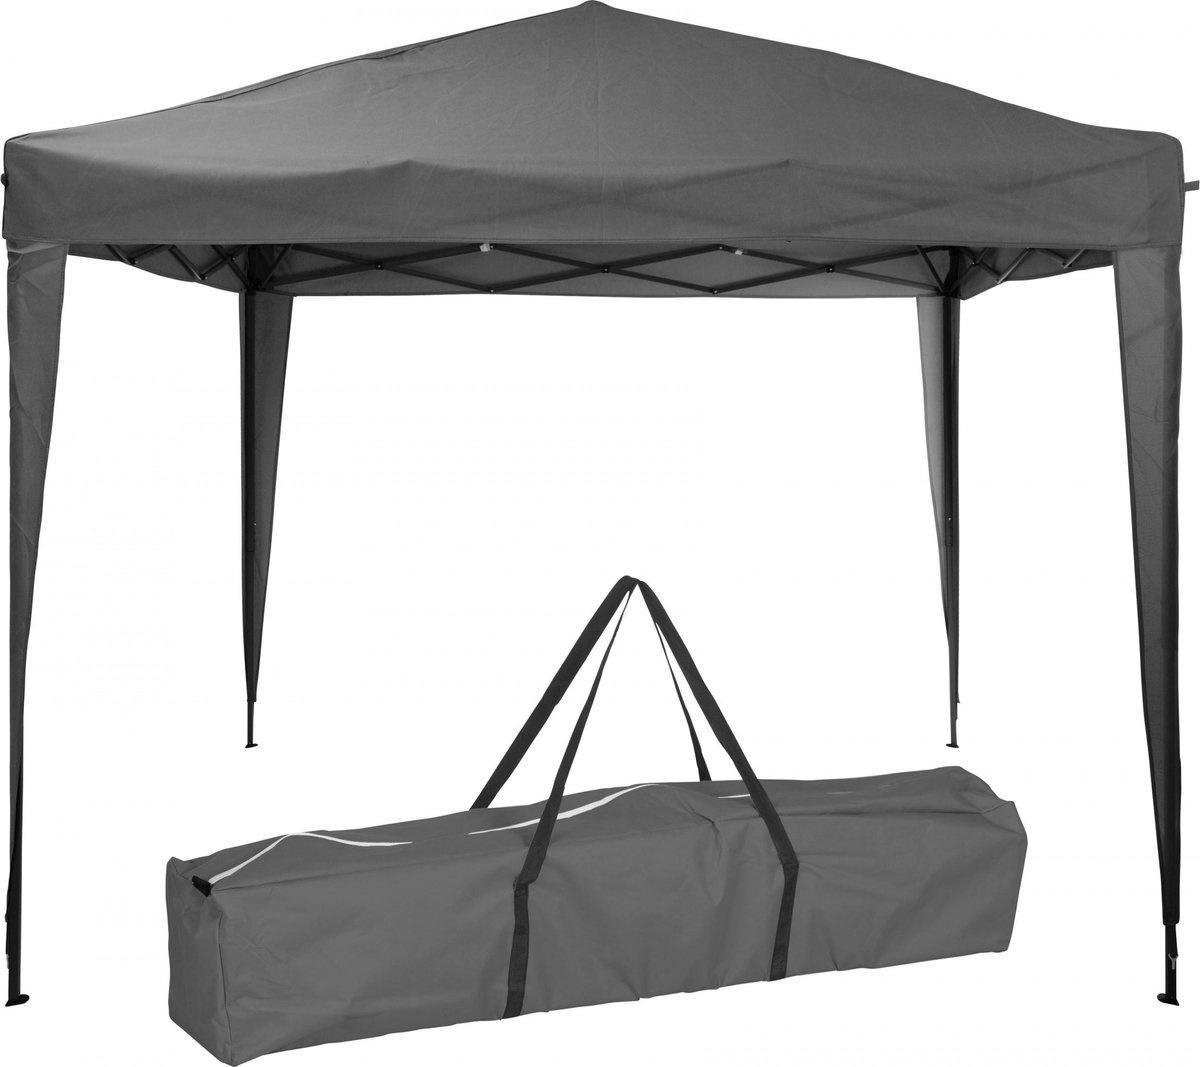 Pro Garden Partytent Easy Up 300 X 300 X 245 Polyester Antraciet